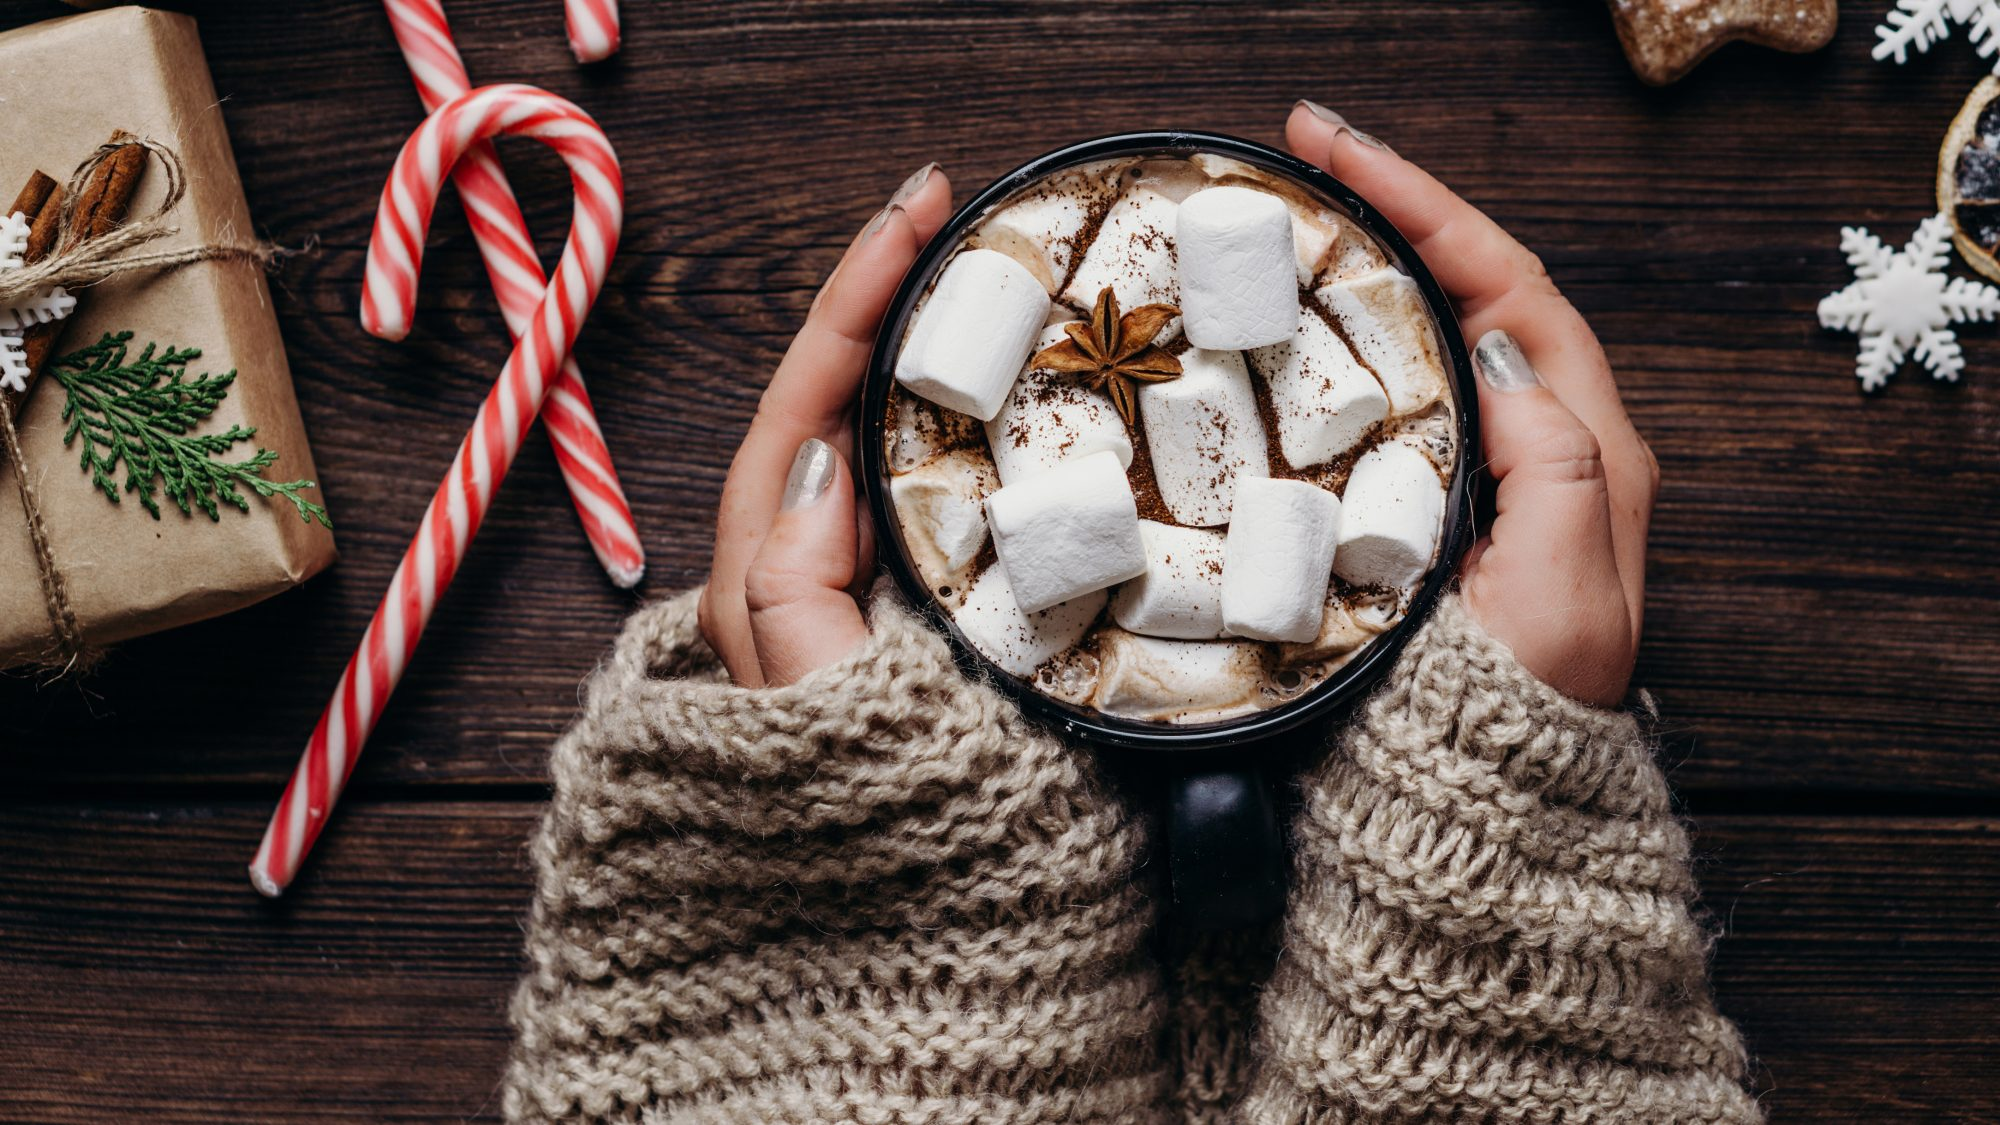 warm-drinks: hands wrapped around a mug of hot cocoa with marshmallows